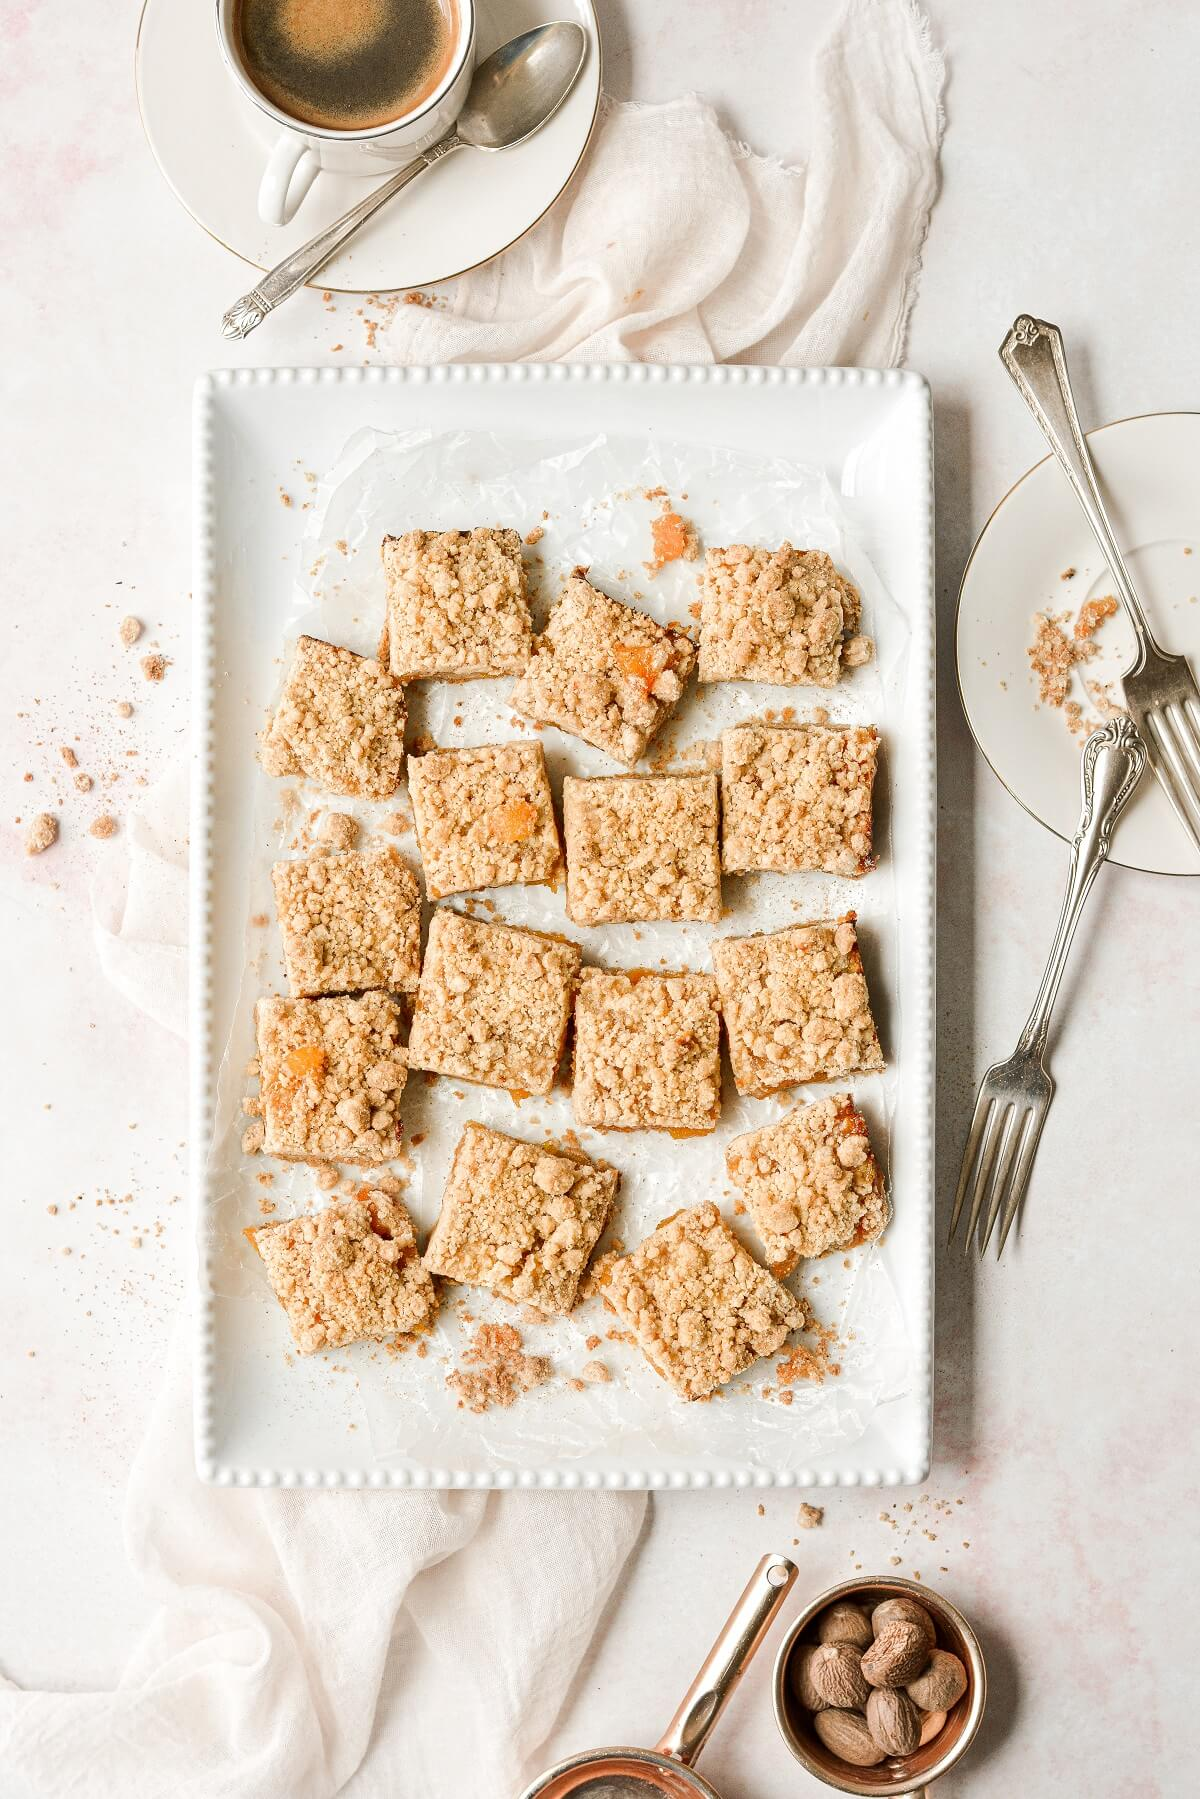 Peach crumb bars on a white platter, with a cup of coffee.